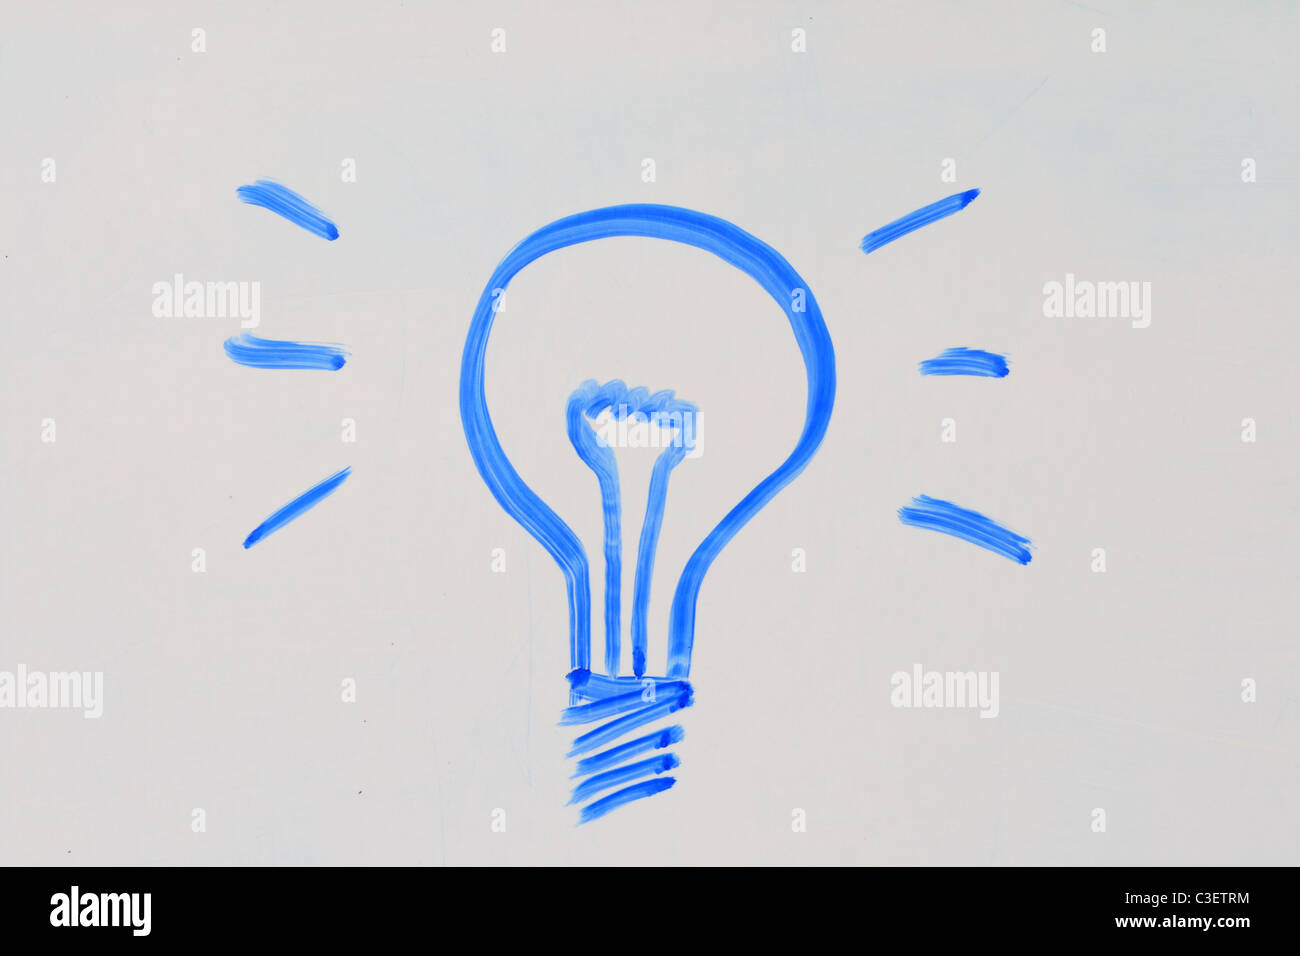 lightbulb drawn in blue marker on a white board - Stock Image